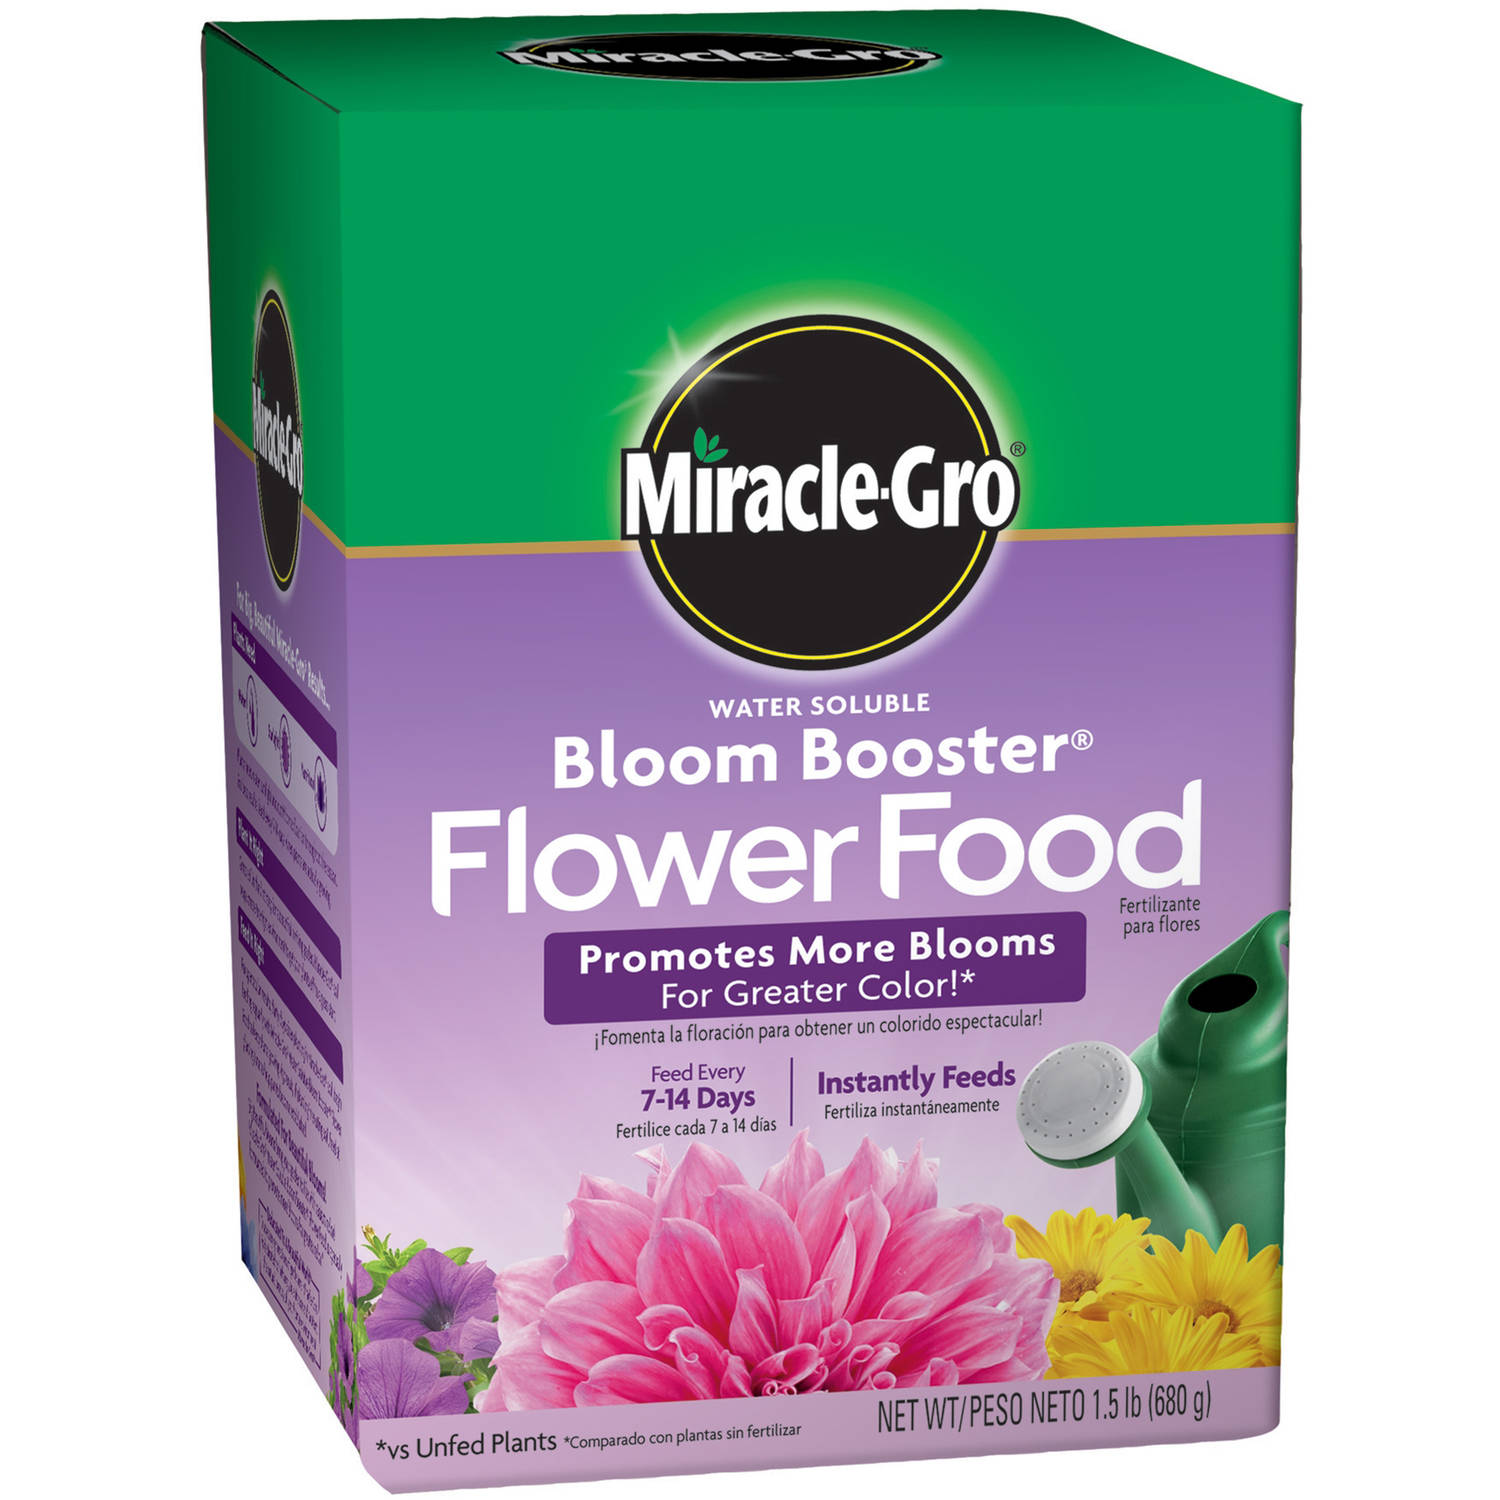 Miracle-Gro Water Soluble Bloom Booster Flower Food, 1.5 lbs